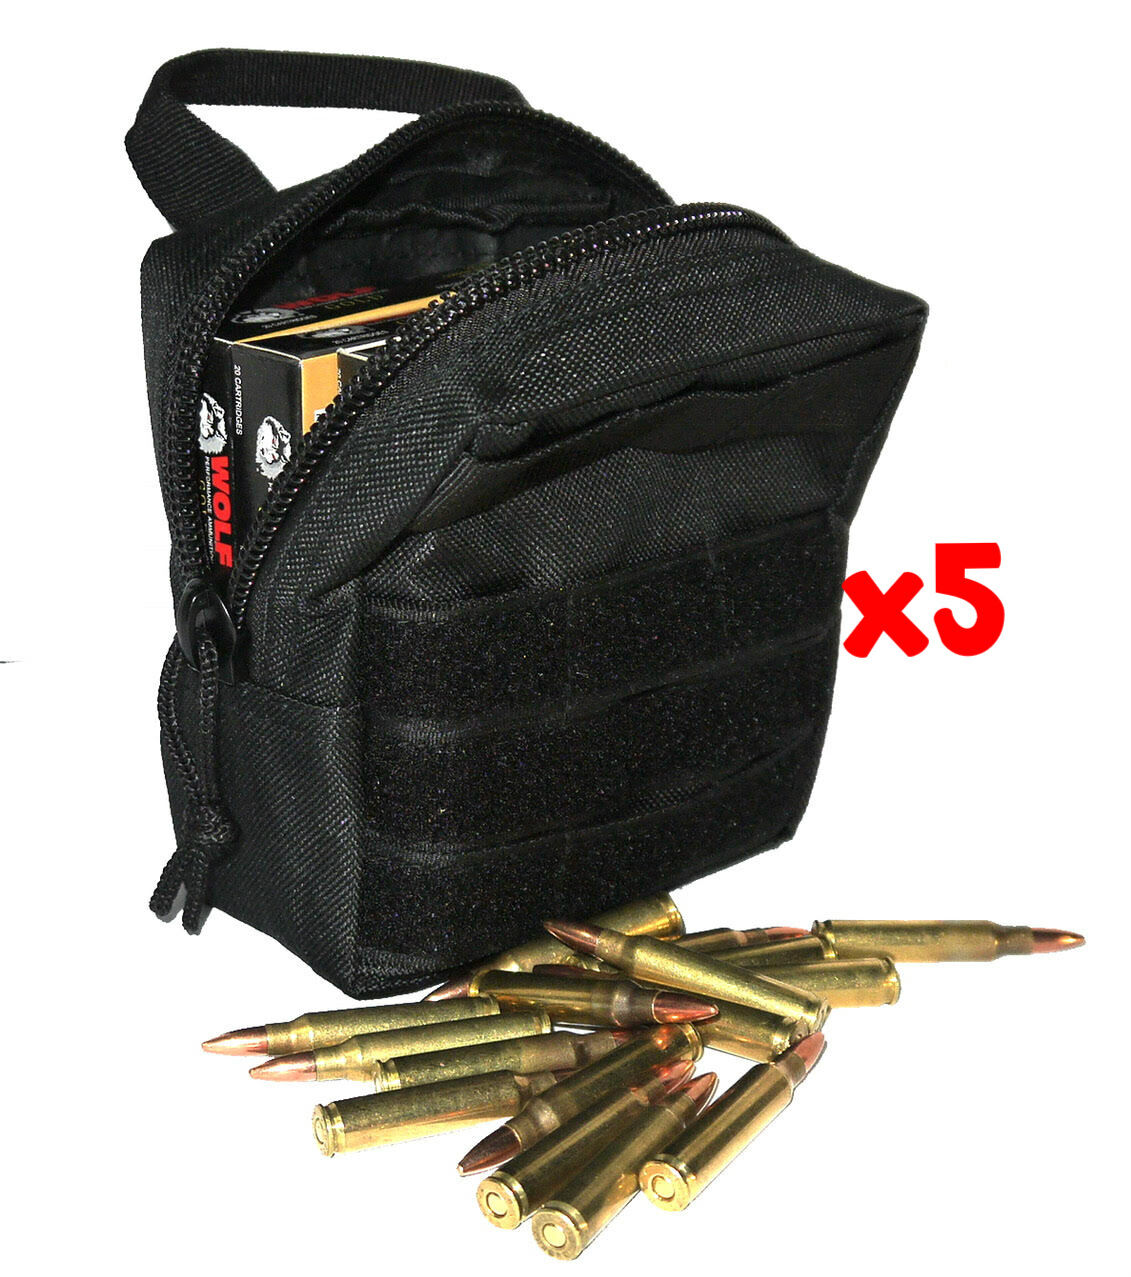 (5) .223 REMINGTON AMMO MODULAR MOLLE UTILITY POUCHES FRONT HOOK LOOP STRAP